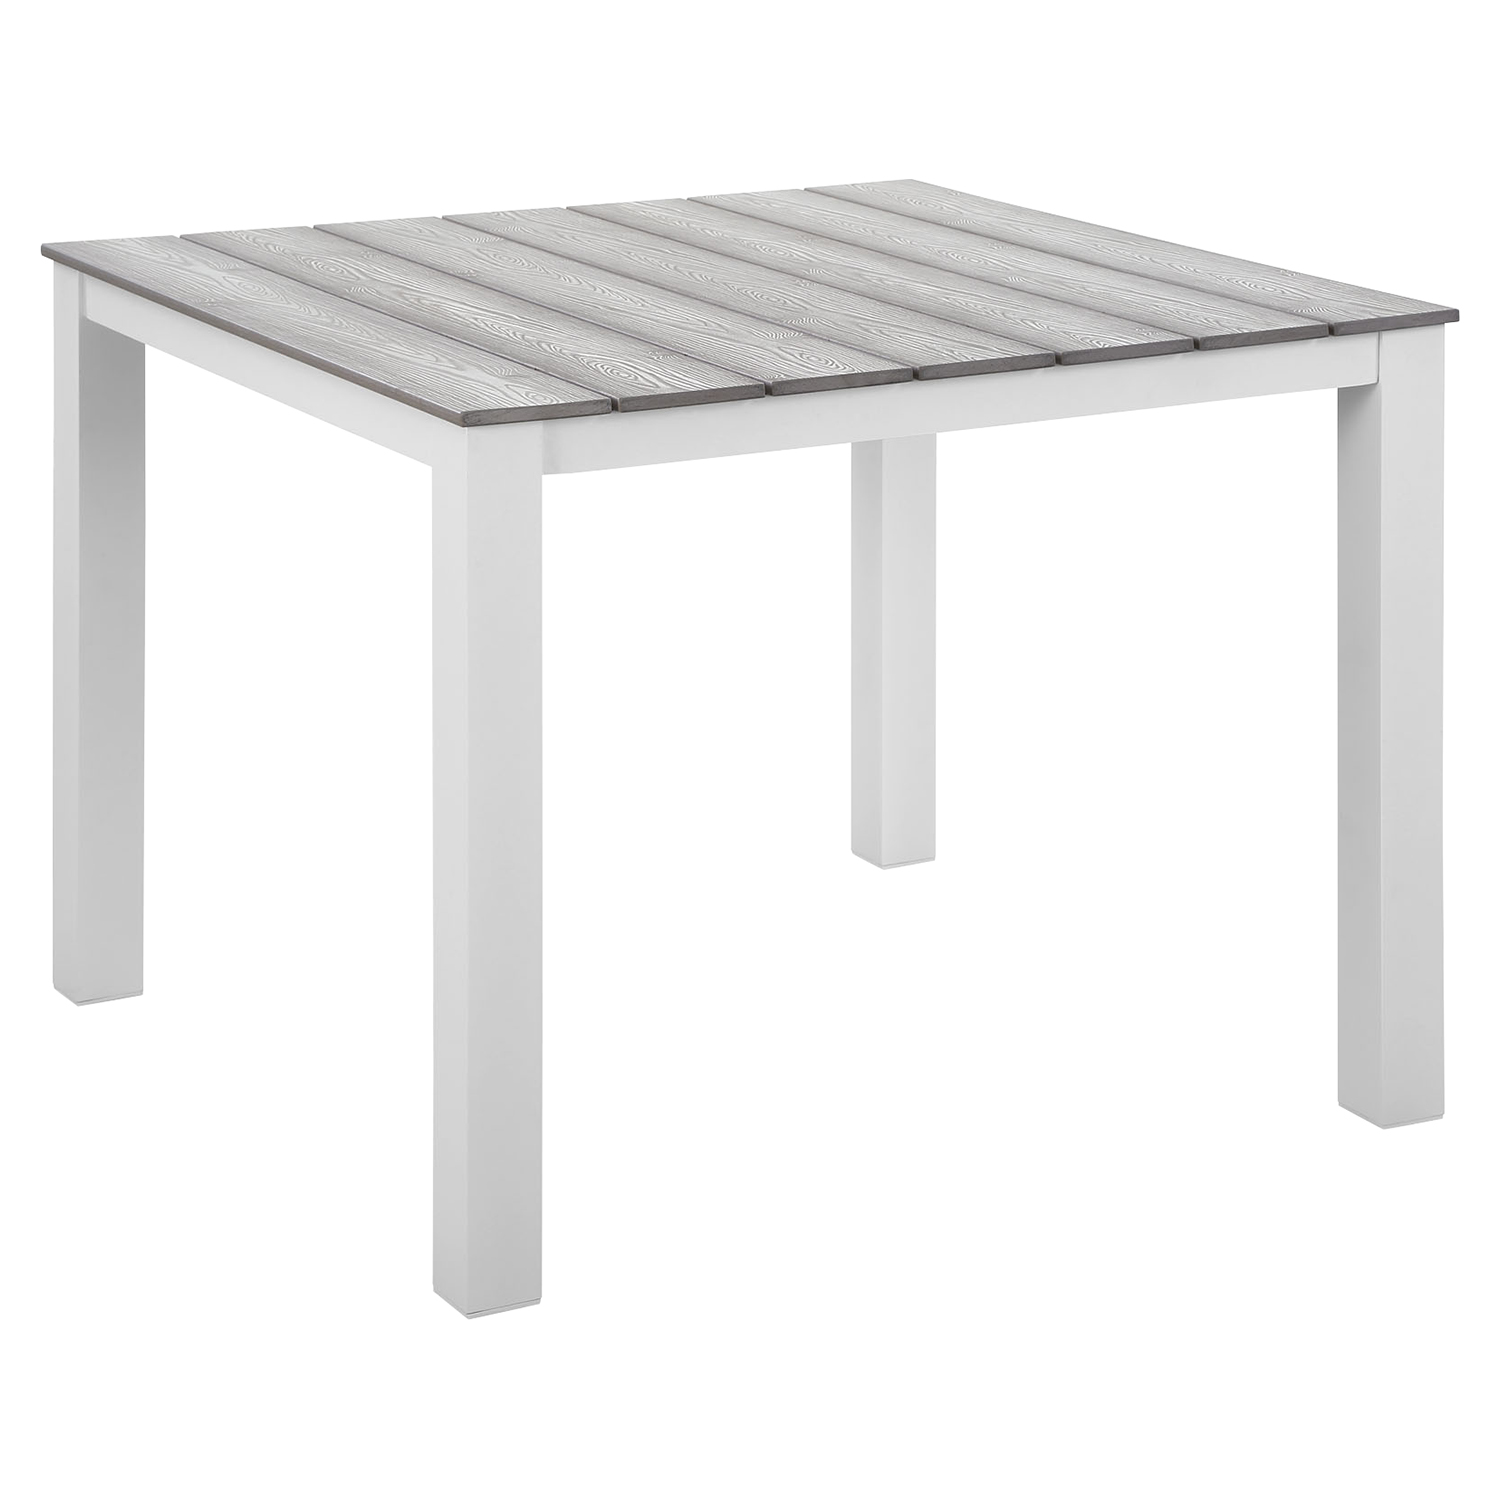 "Maine 40"" Outdoor Patio Dining Table - White, Light Gray - EEI-1507-WHI-LGR"